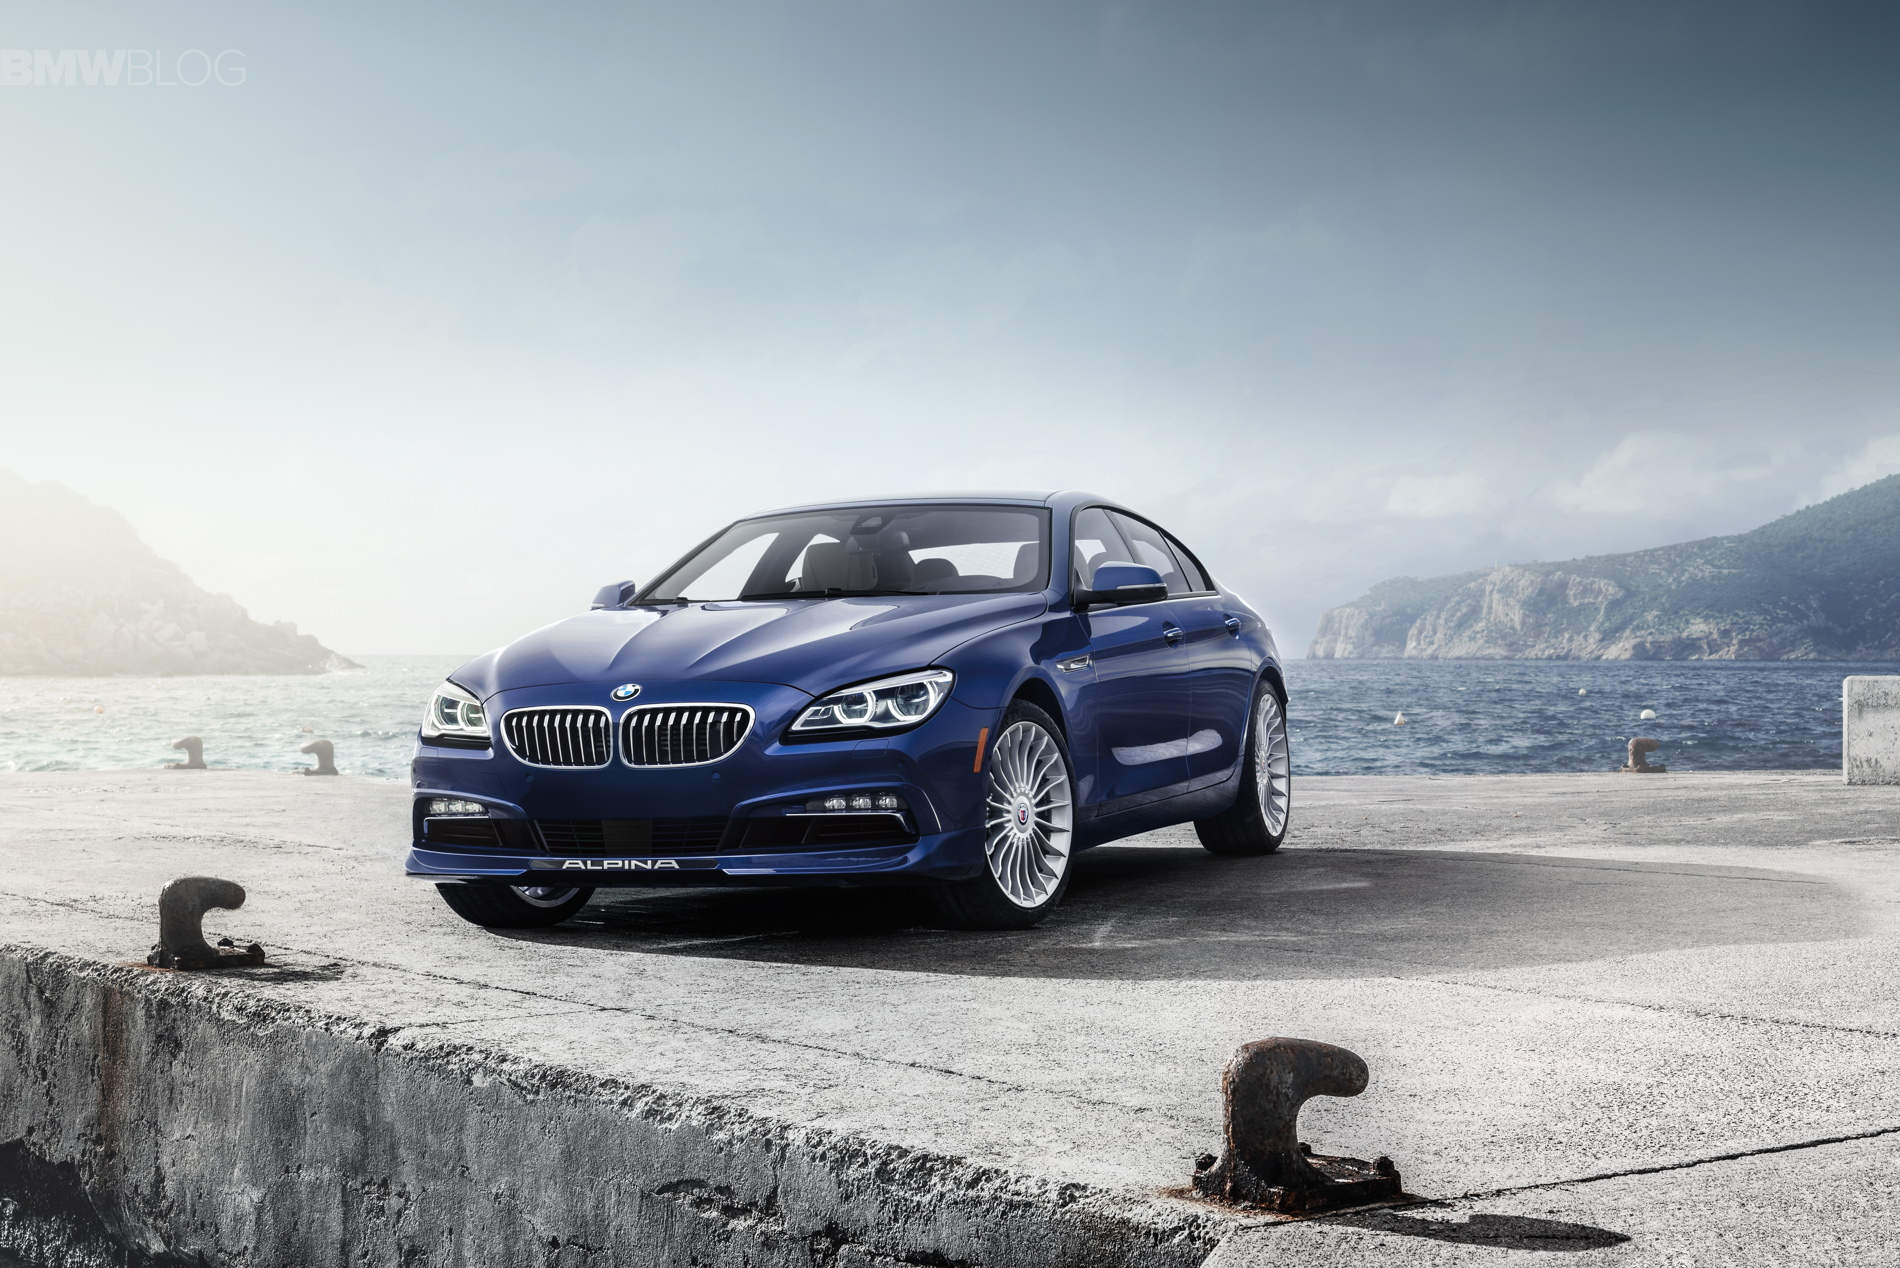 2016 bmw alpina b6 xdrive gran coupe images 01